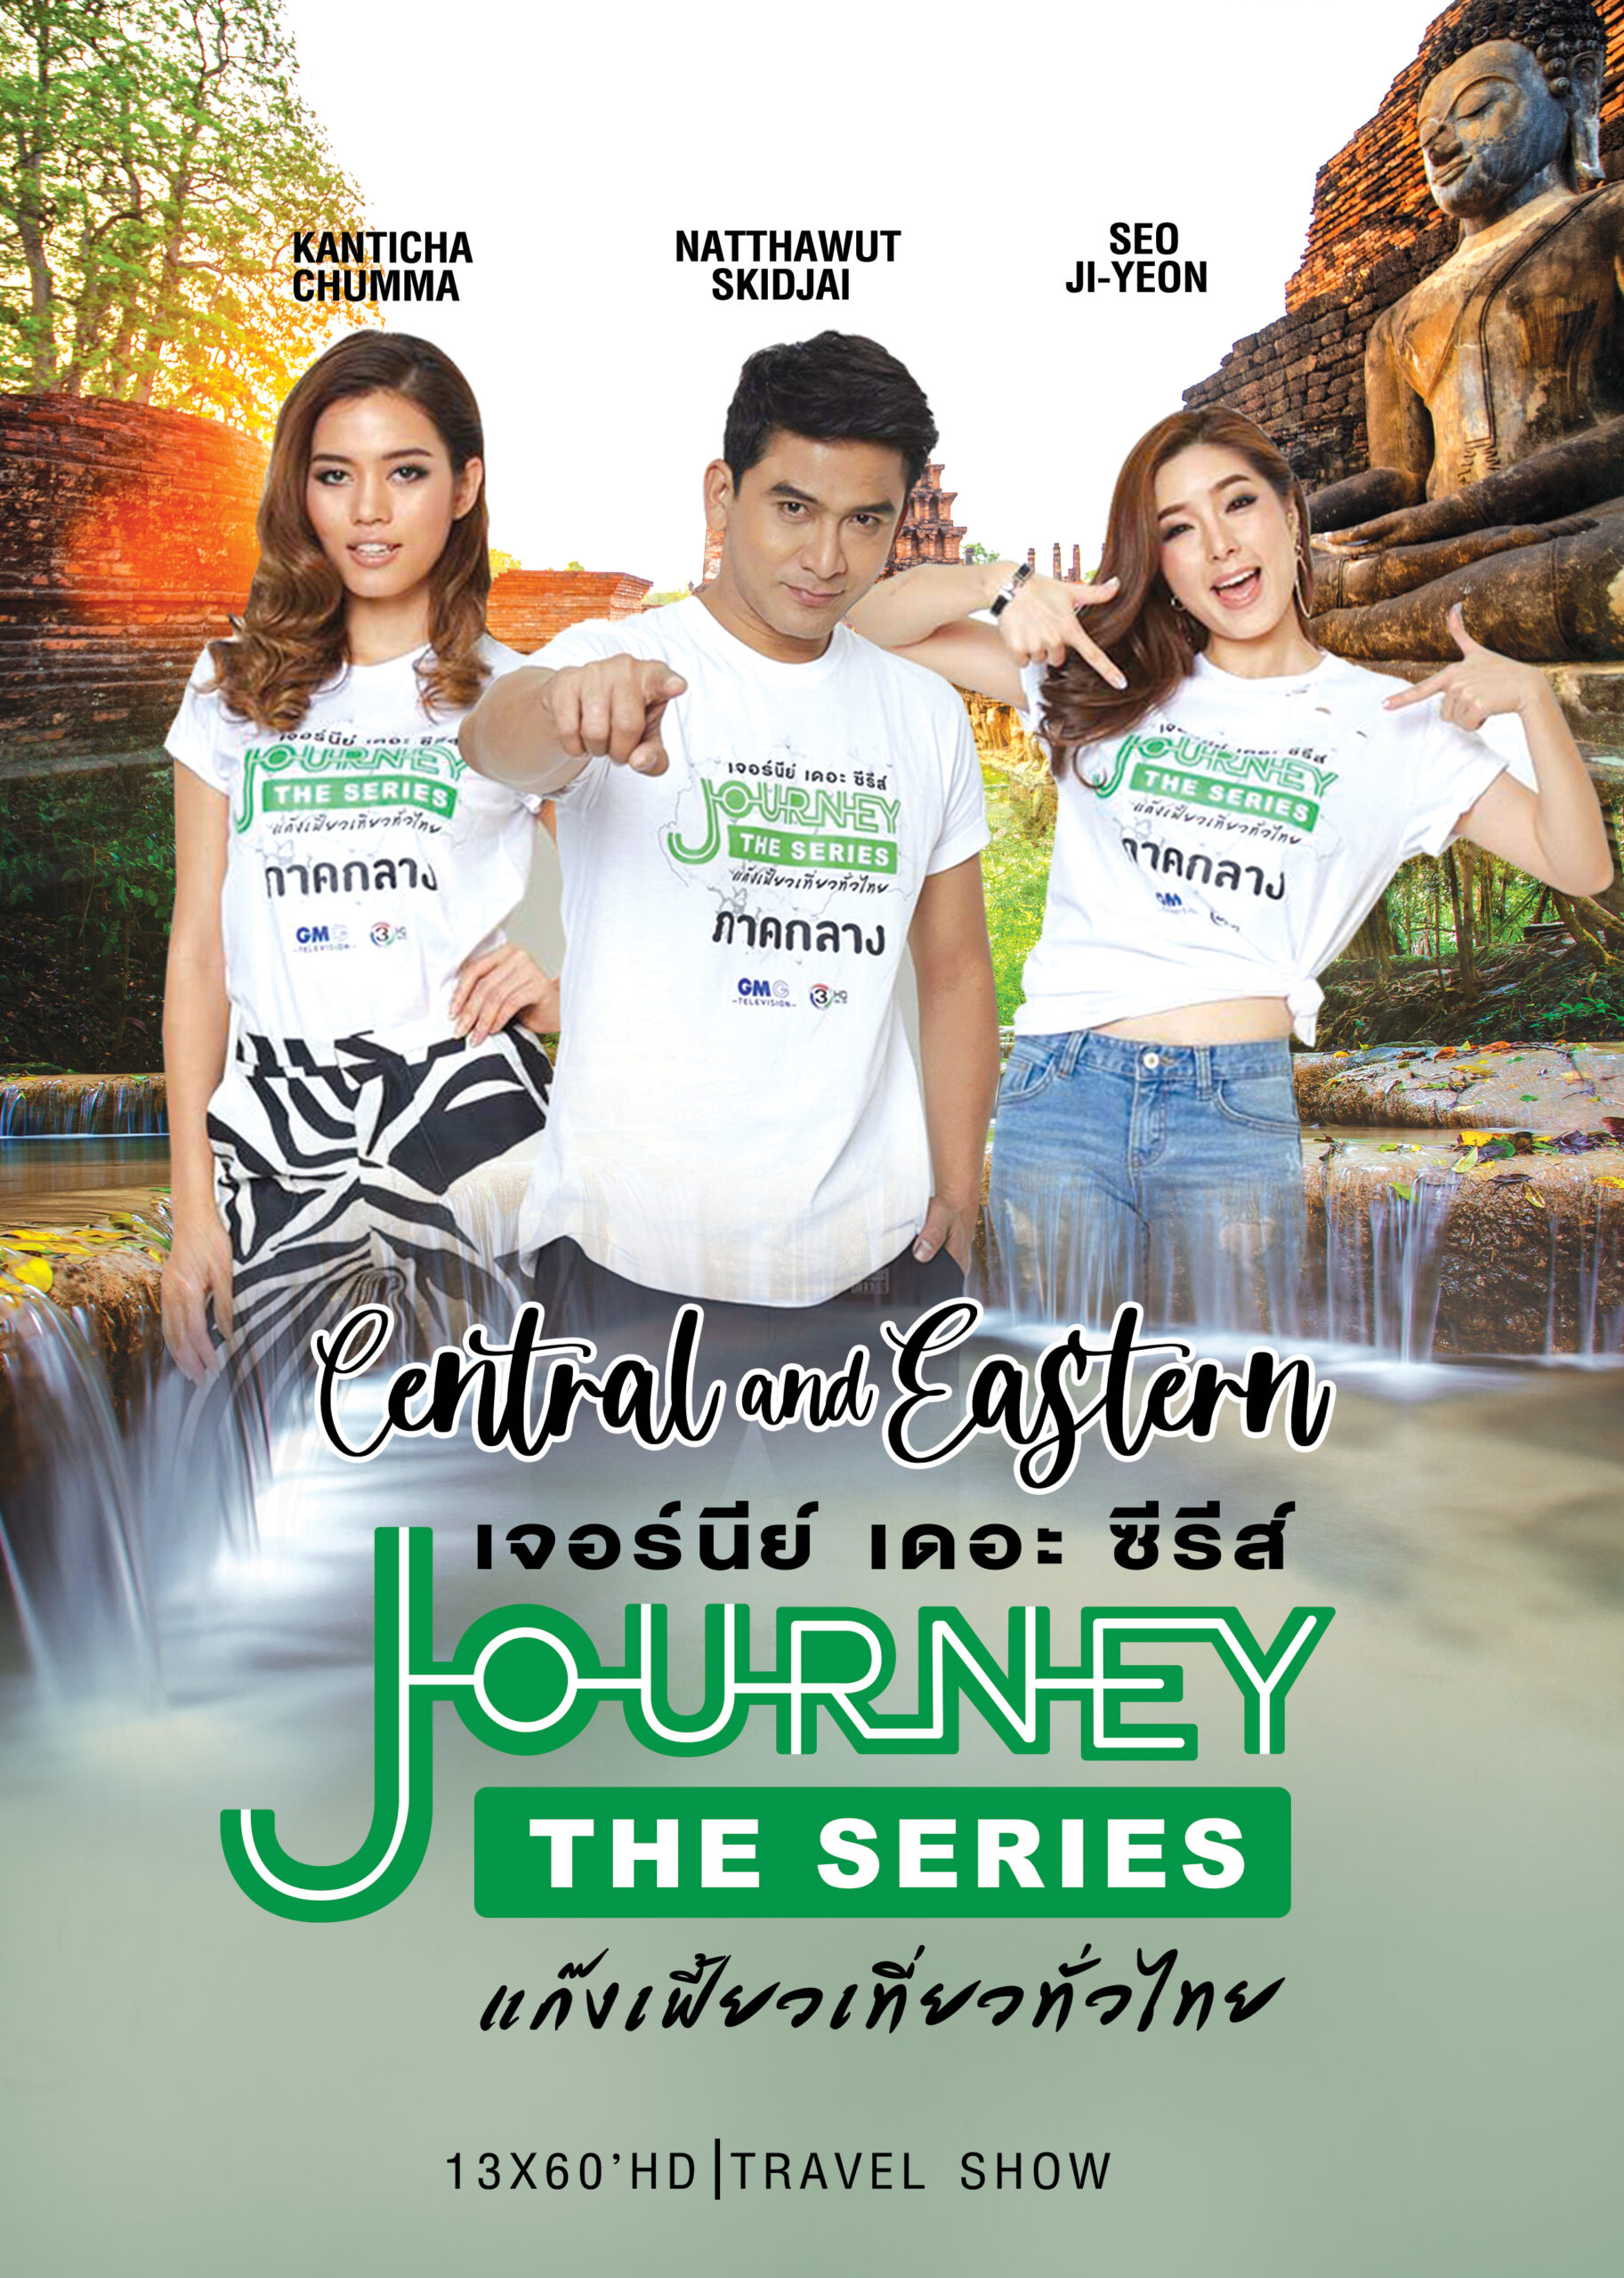 Journey-The-Series - Central & Eastern 5